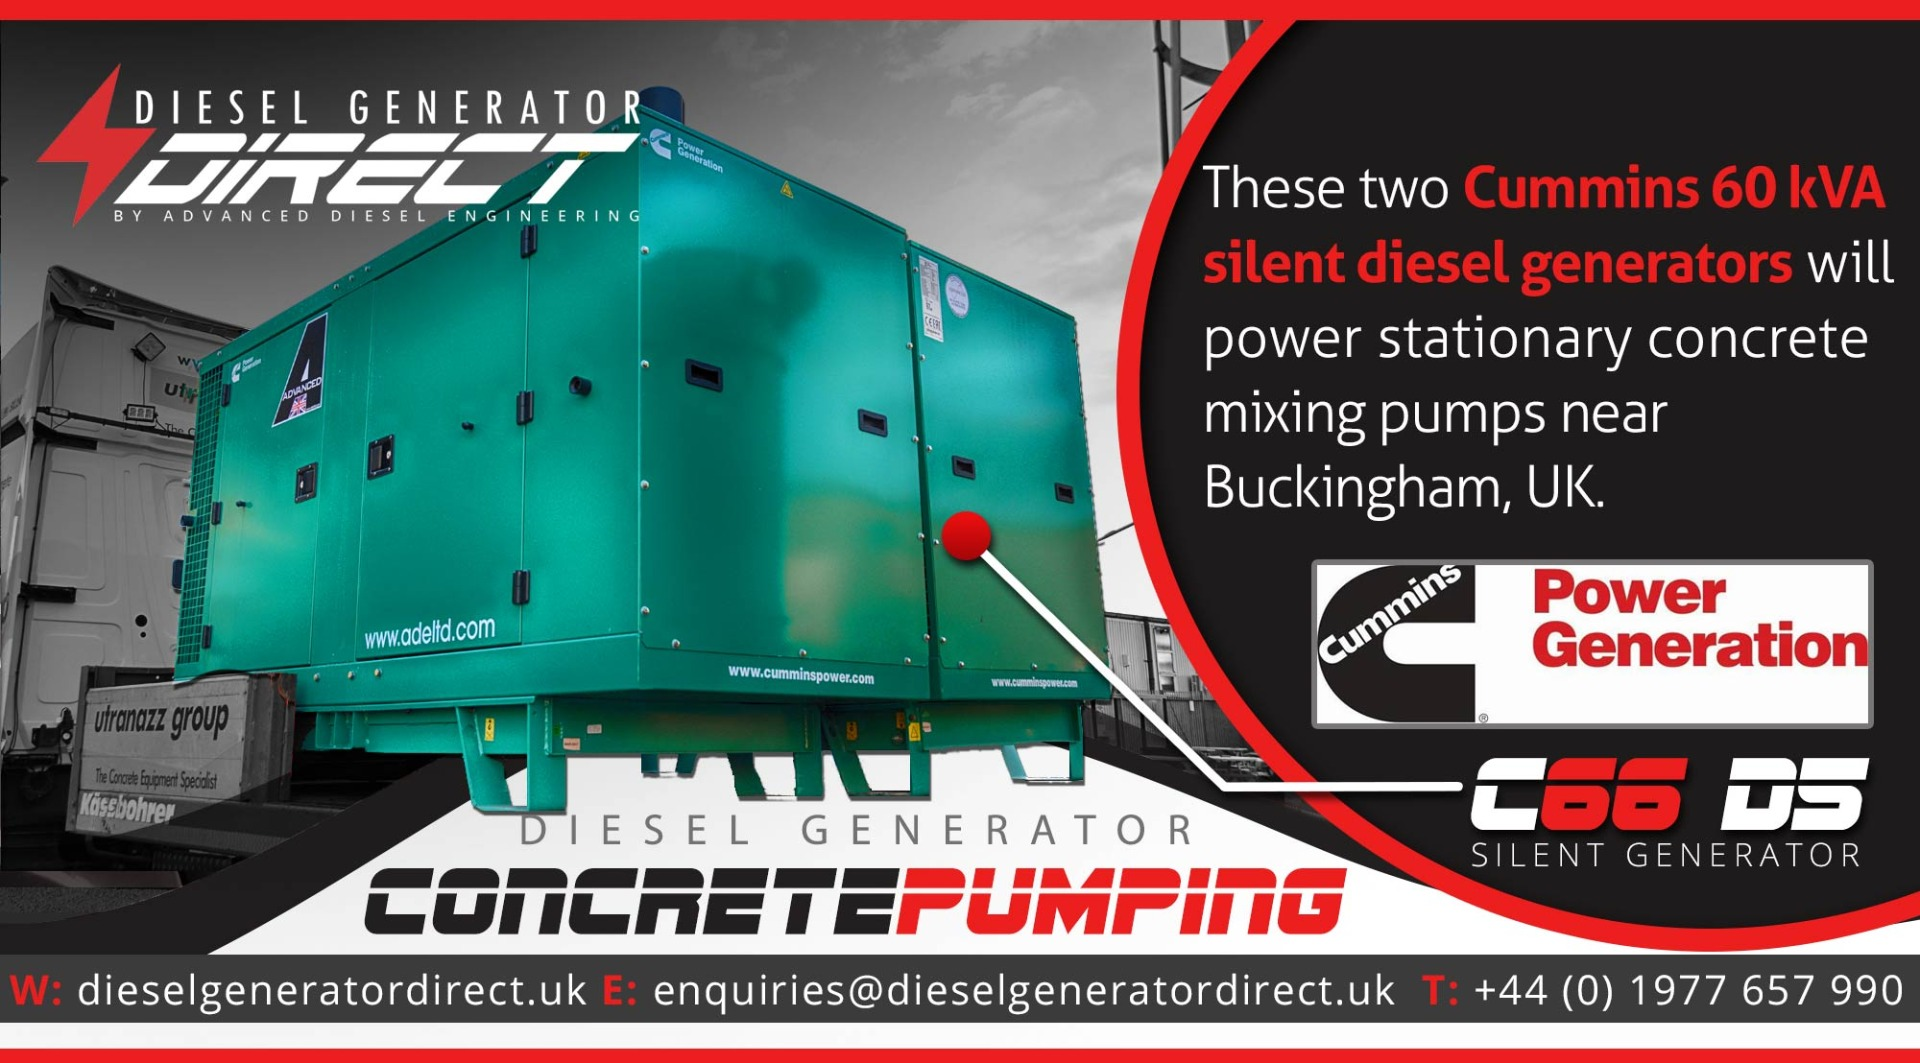 cummins 60kVA silent generator for concrete pumping at building site